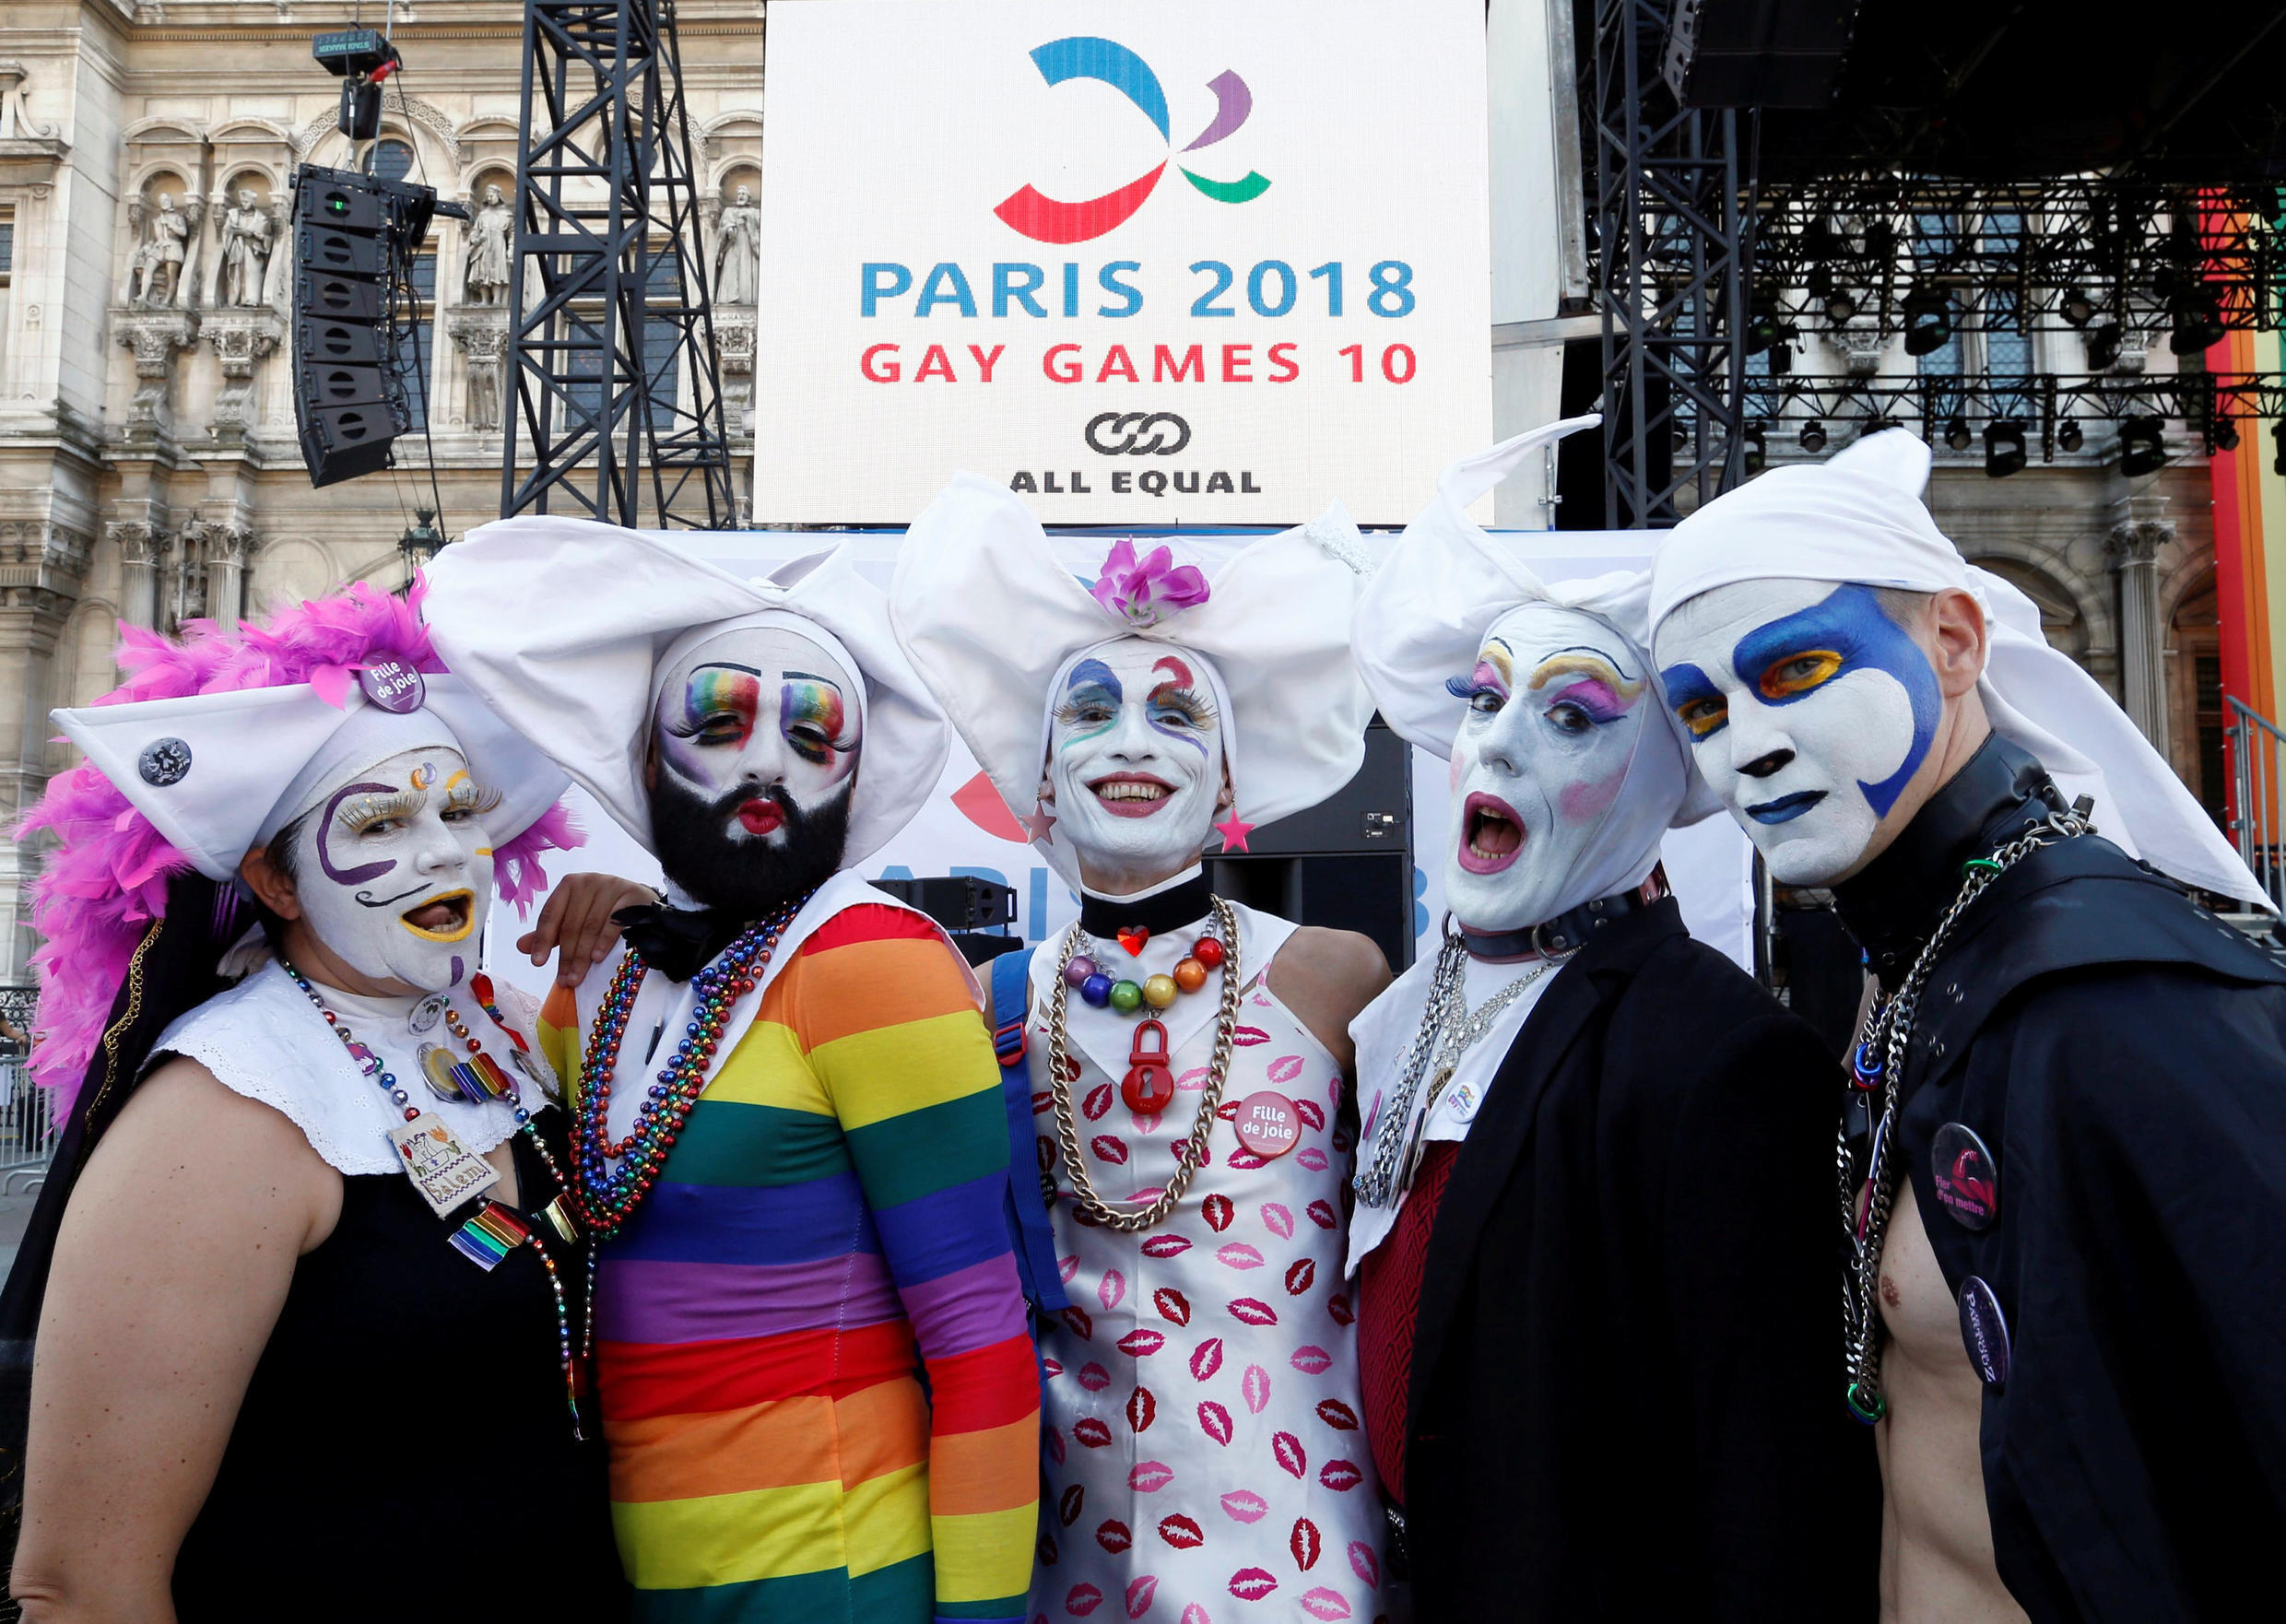 Participants at the 10th Gay Games in Paris